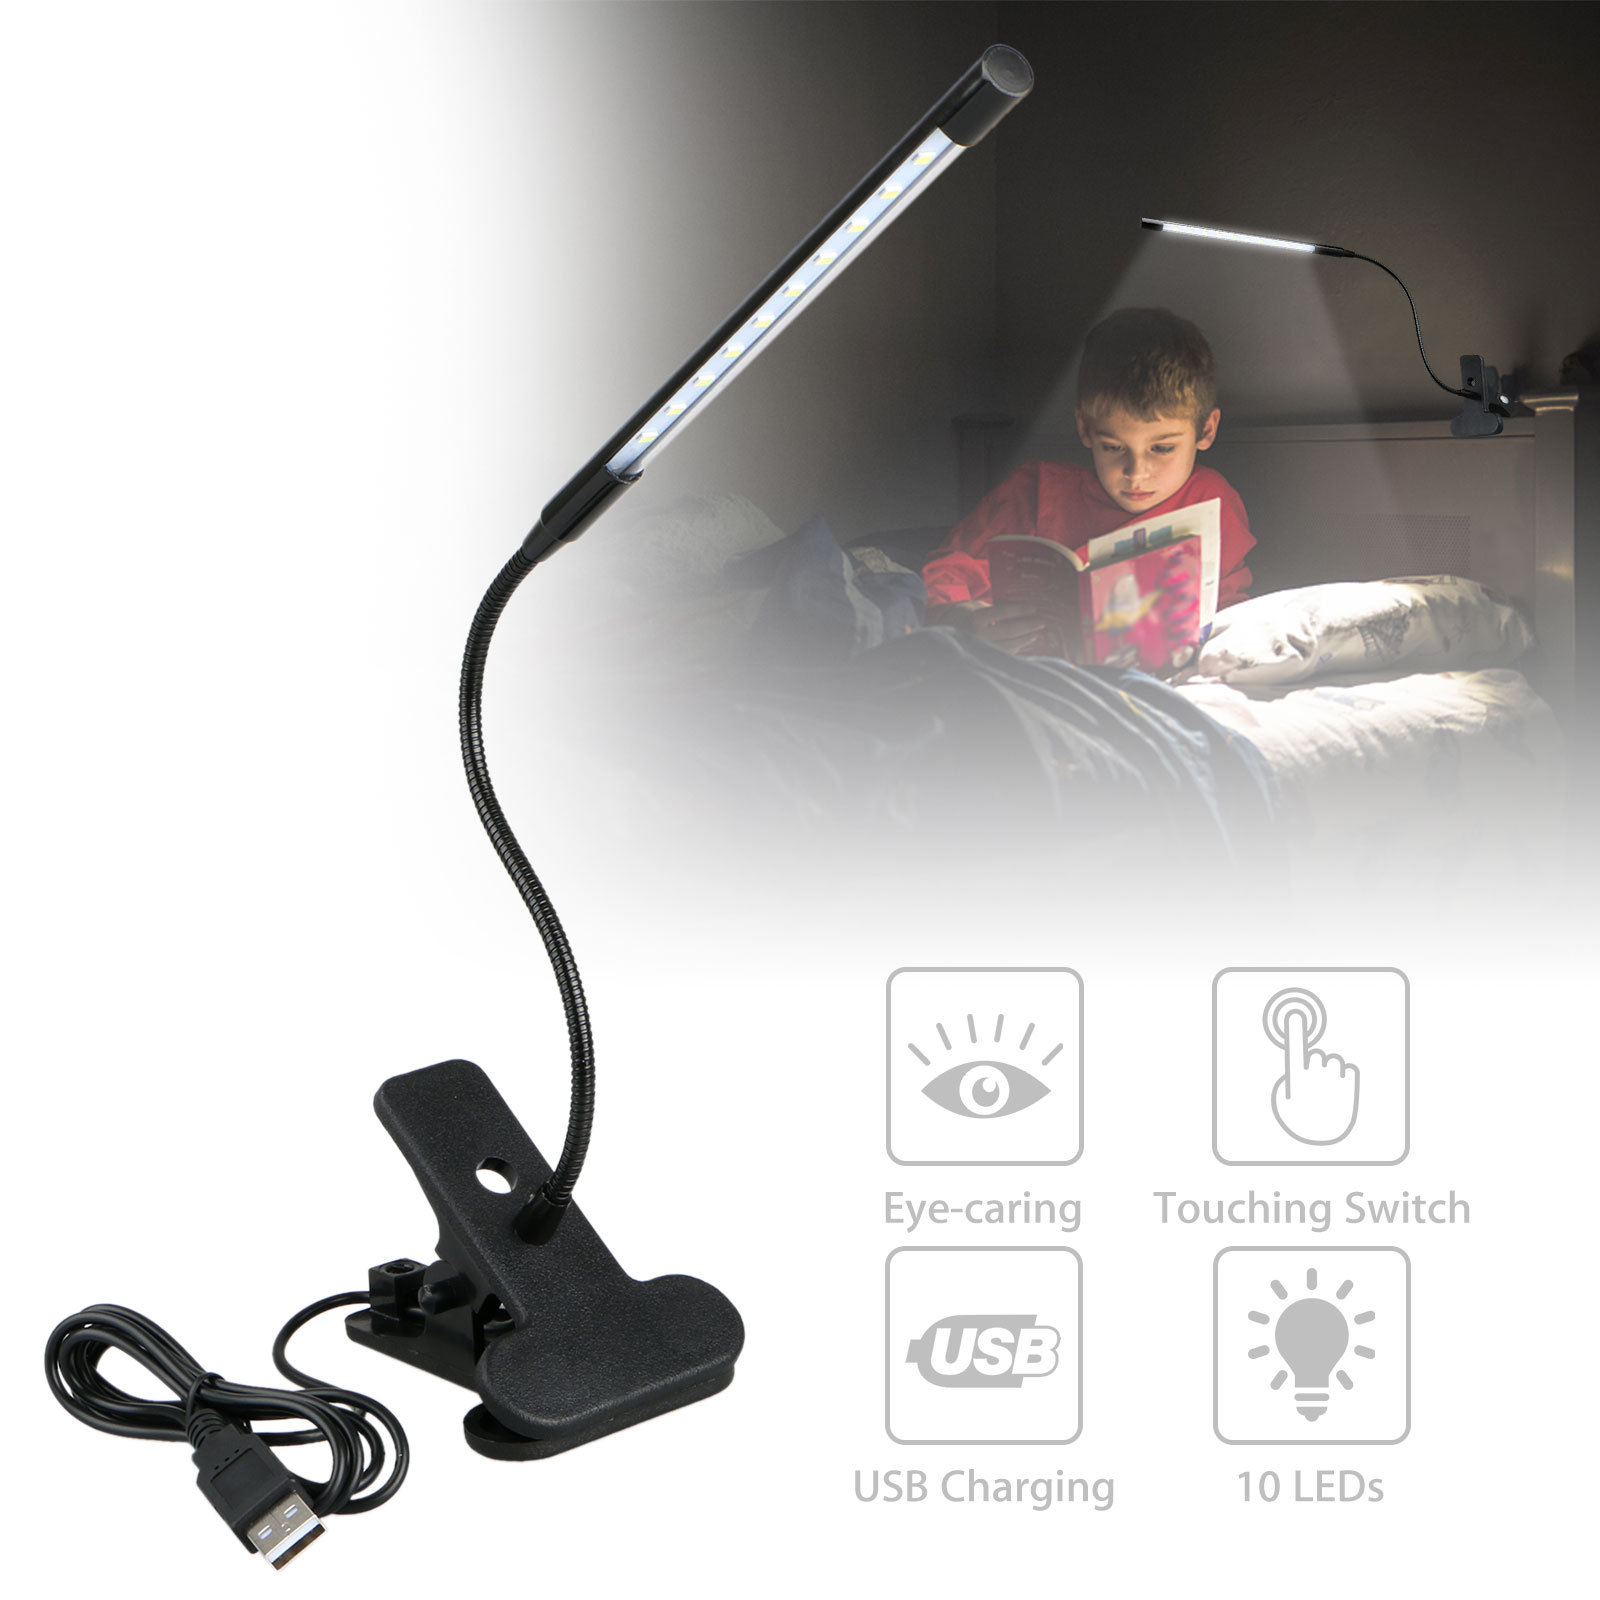 Adjustable-USB-Rechargeable-LED-Reading-Light-Clip-on-Clamp-Bed-Table-Desk-Lamp